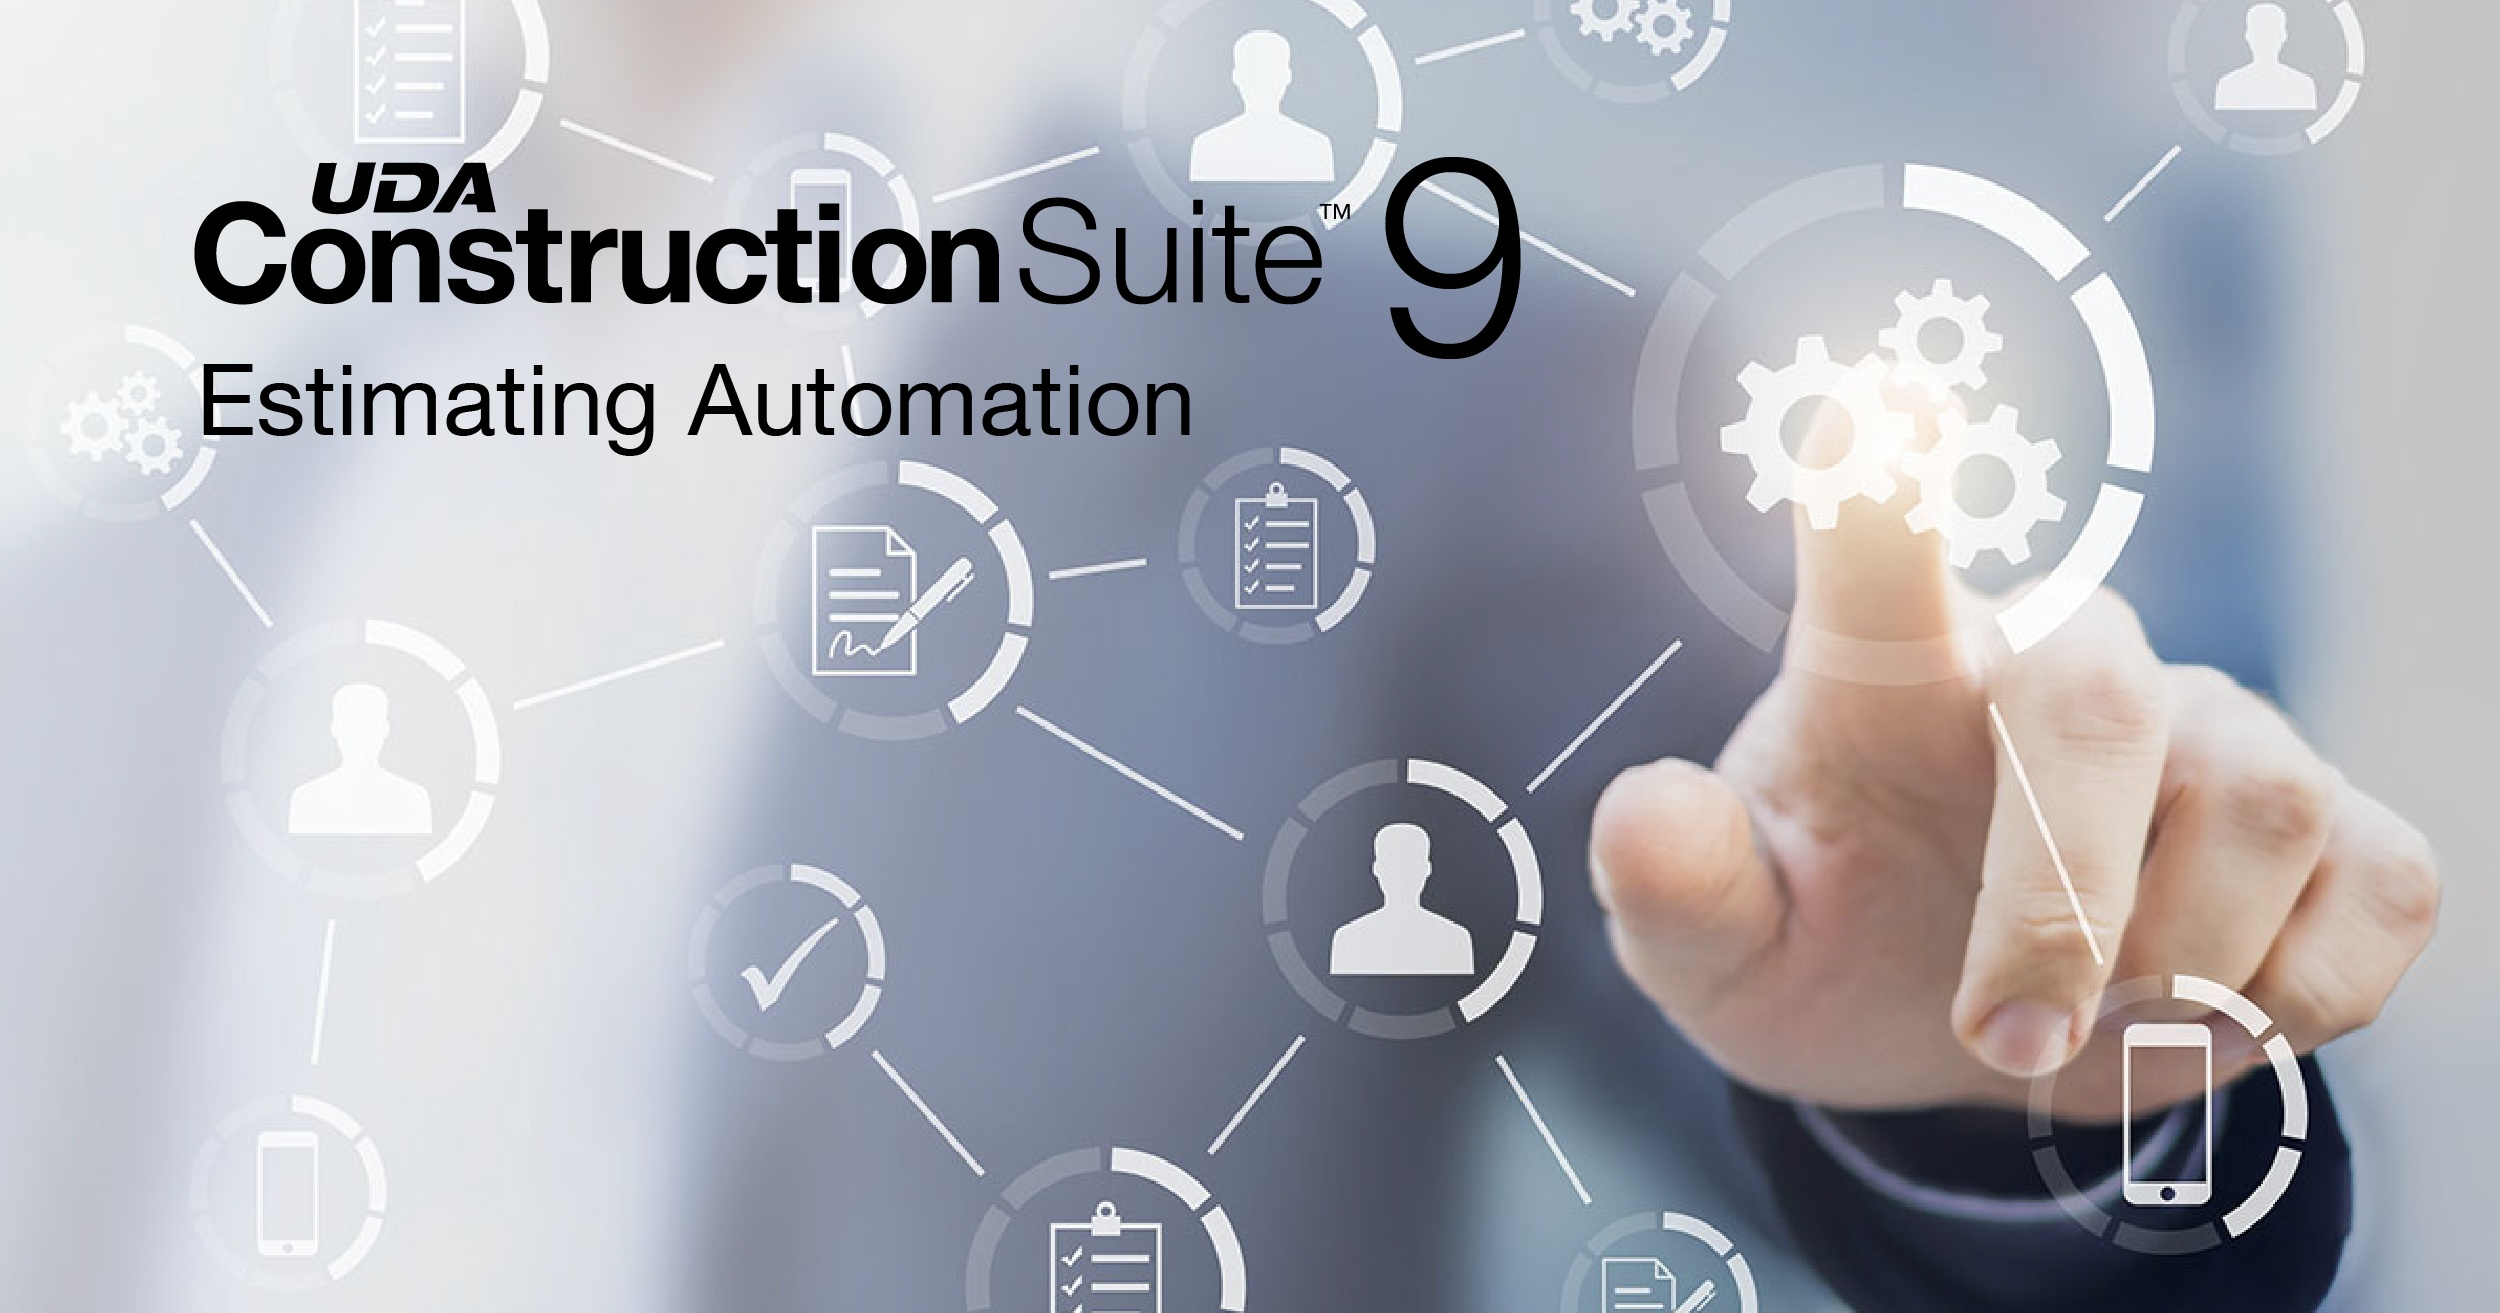 ConstructionSuite 9 Provides Improved Efficiency with Estimating Automation